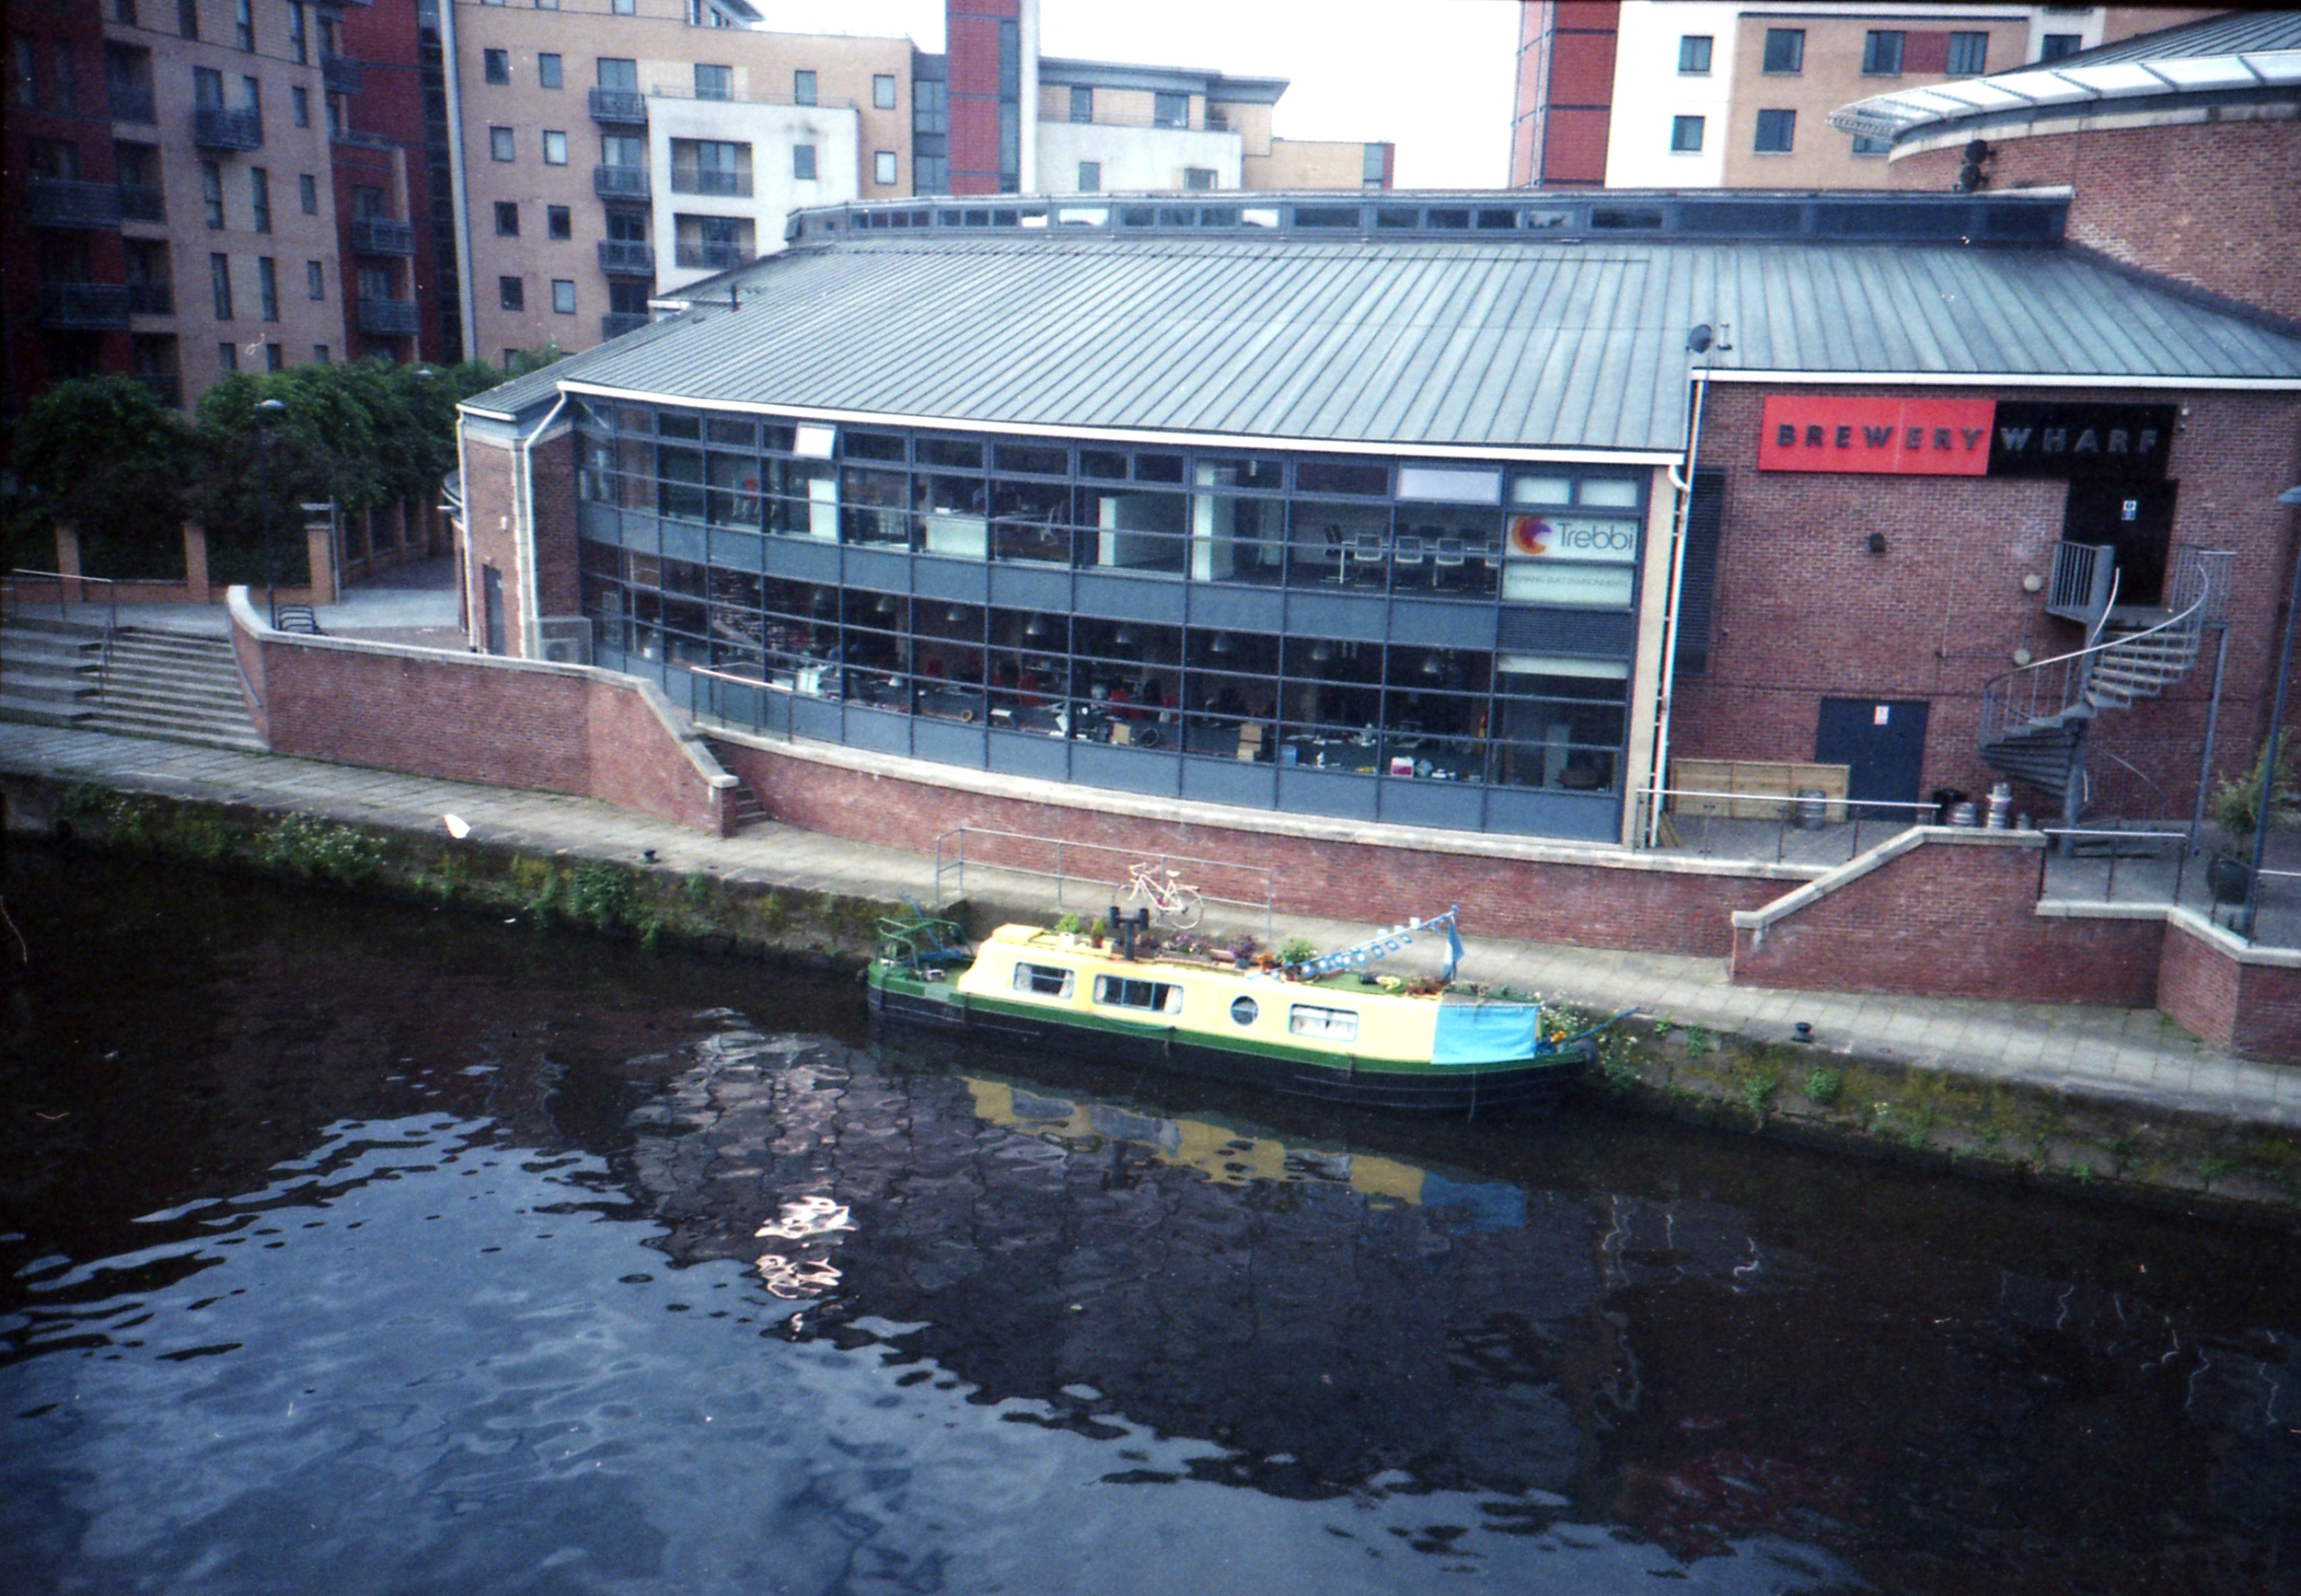 173/366 - The cutest boat docked on the canal!